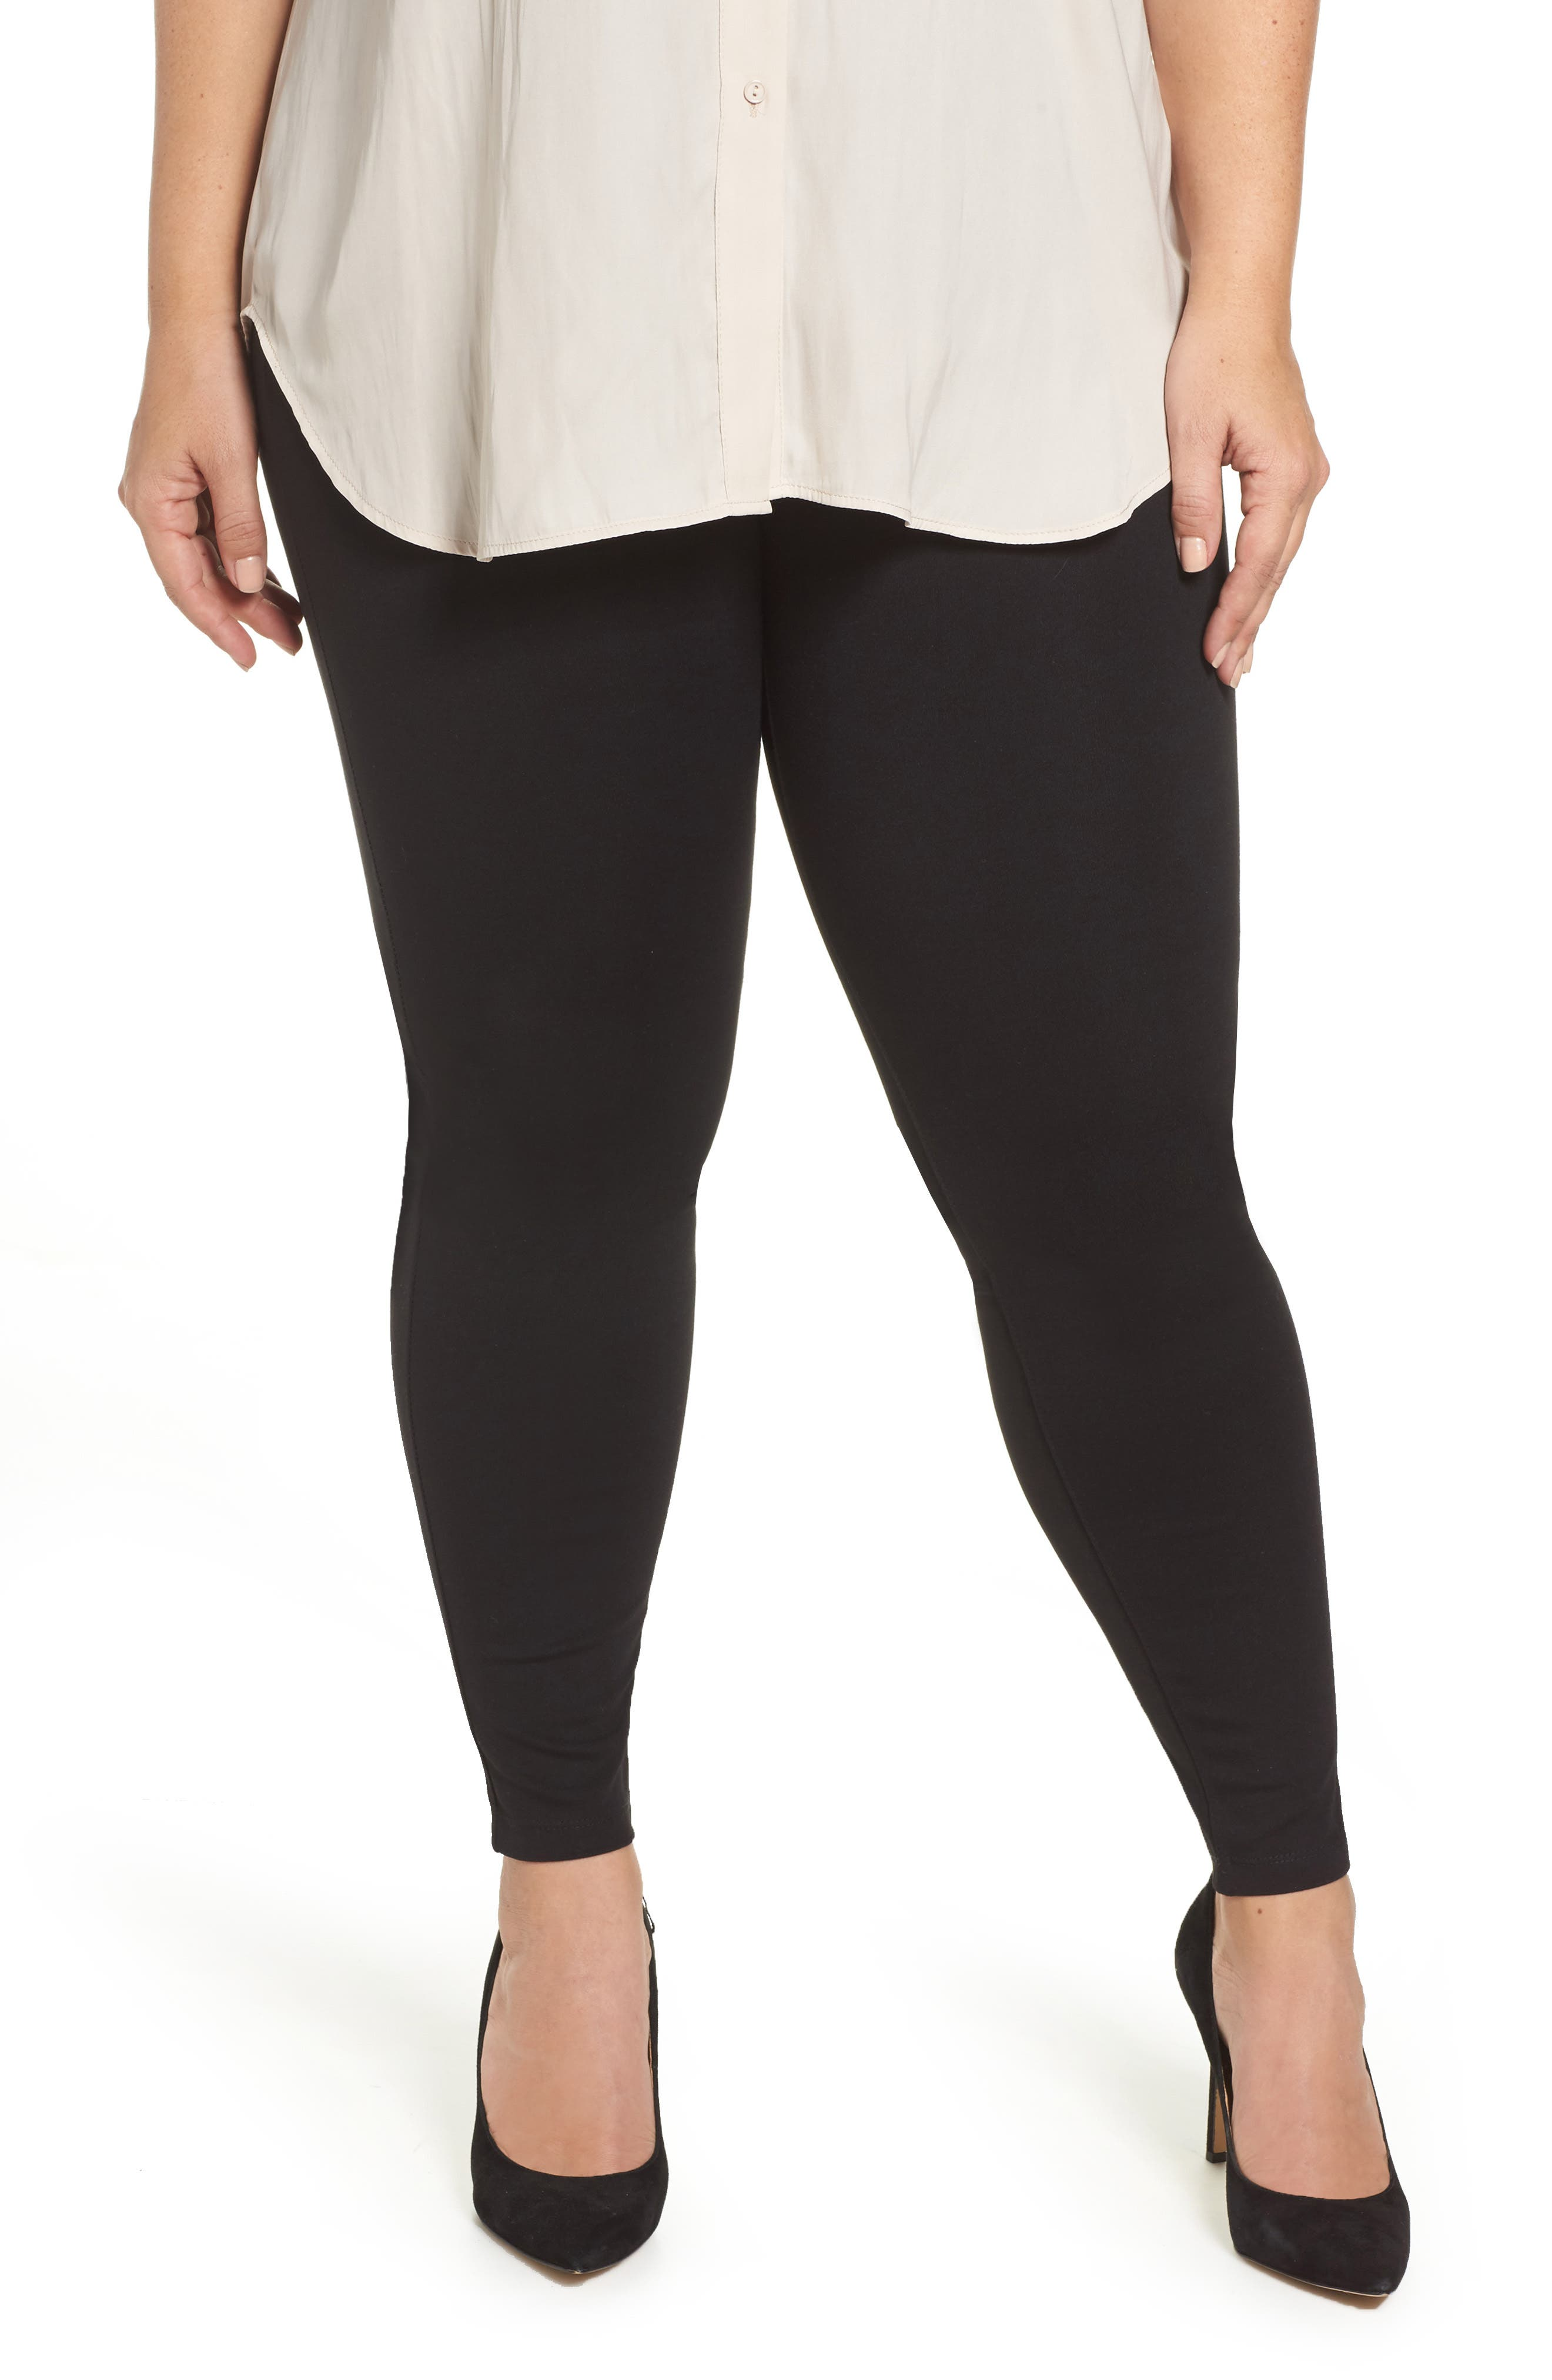 Main Image - Liverpool Jeans Company Ponte Knit Leggings (Plus Size)